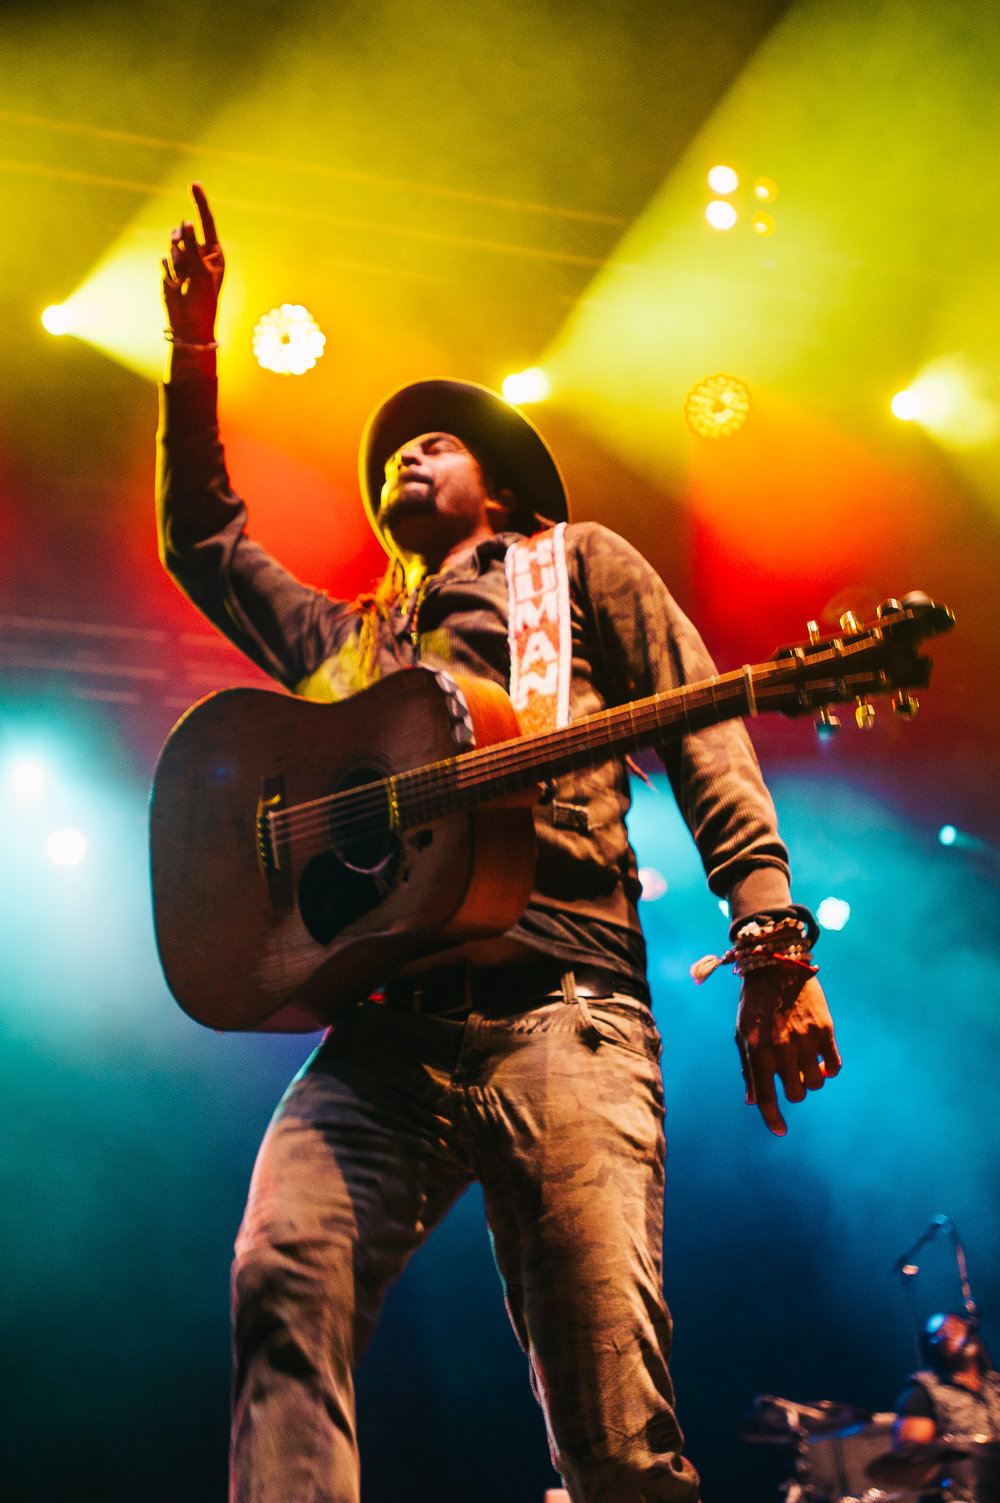 2_Michael_Franti_&_Spearhead_Rifflandia-Timothy_Nguyen-20160916 (17 of 19).jpg